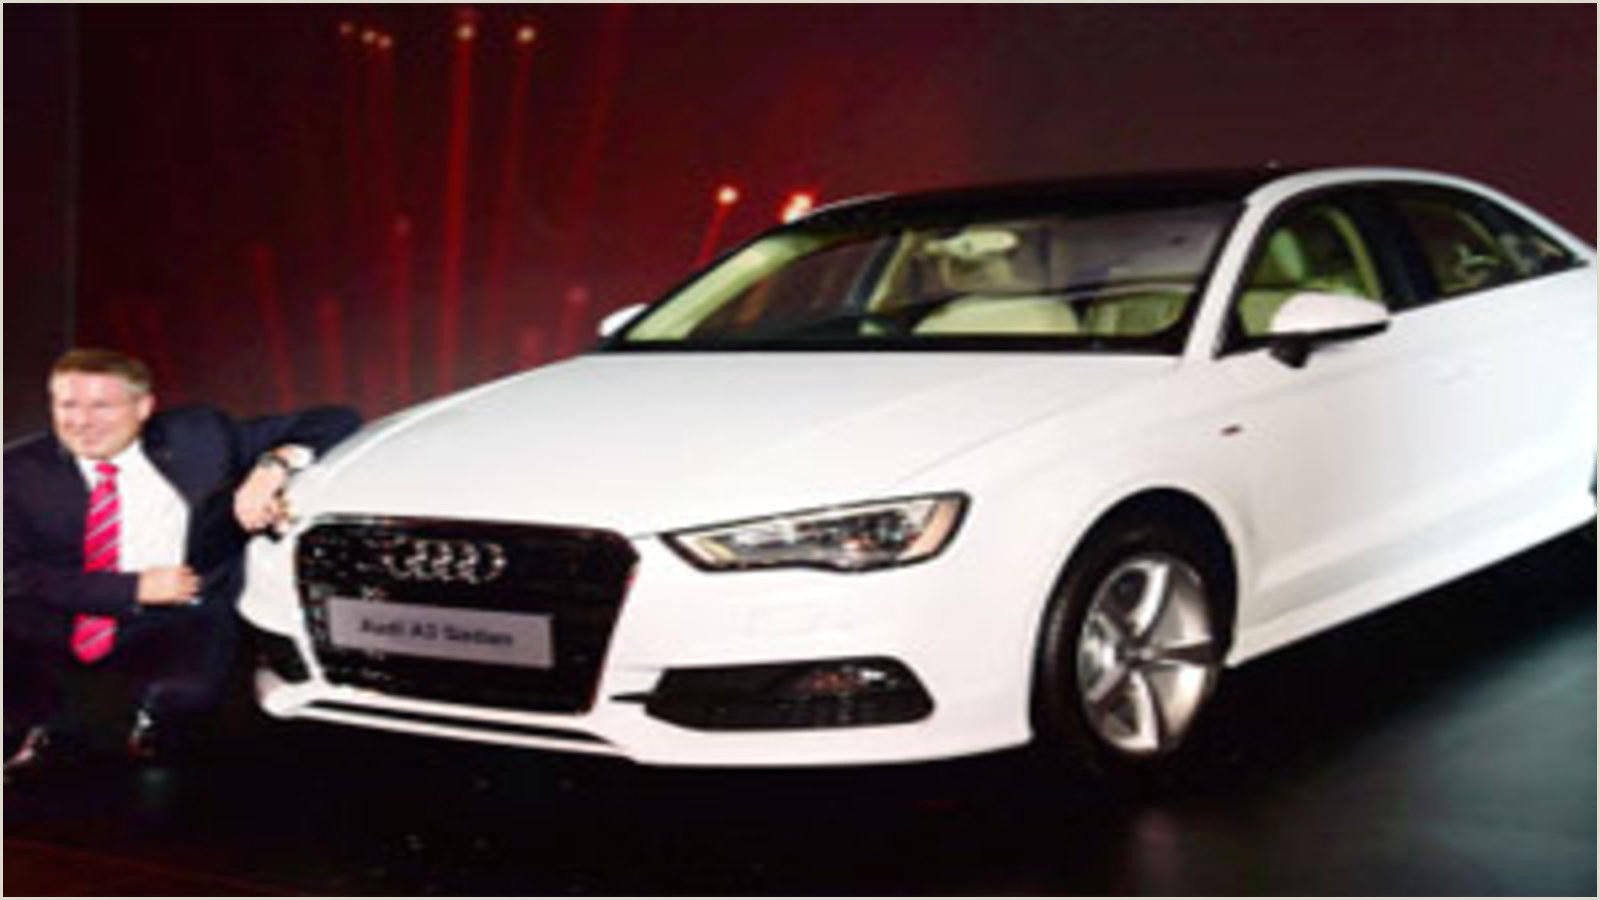 Painting Logos Business Cards Audi Launches A3 Sedan Price Starting At Rs 22 95 Lakh